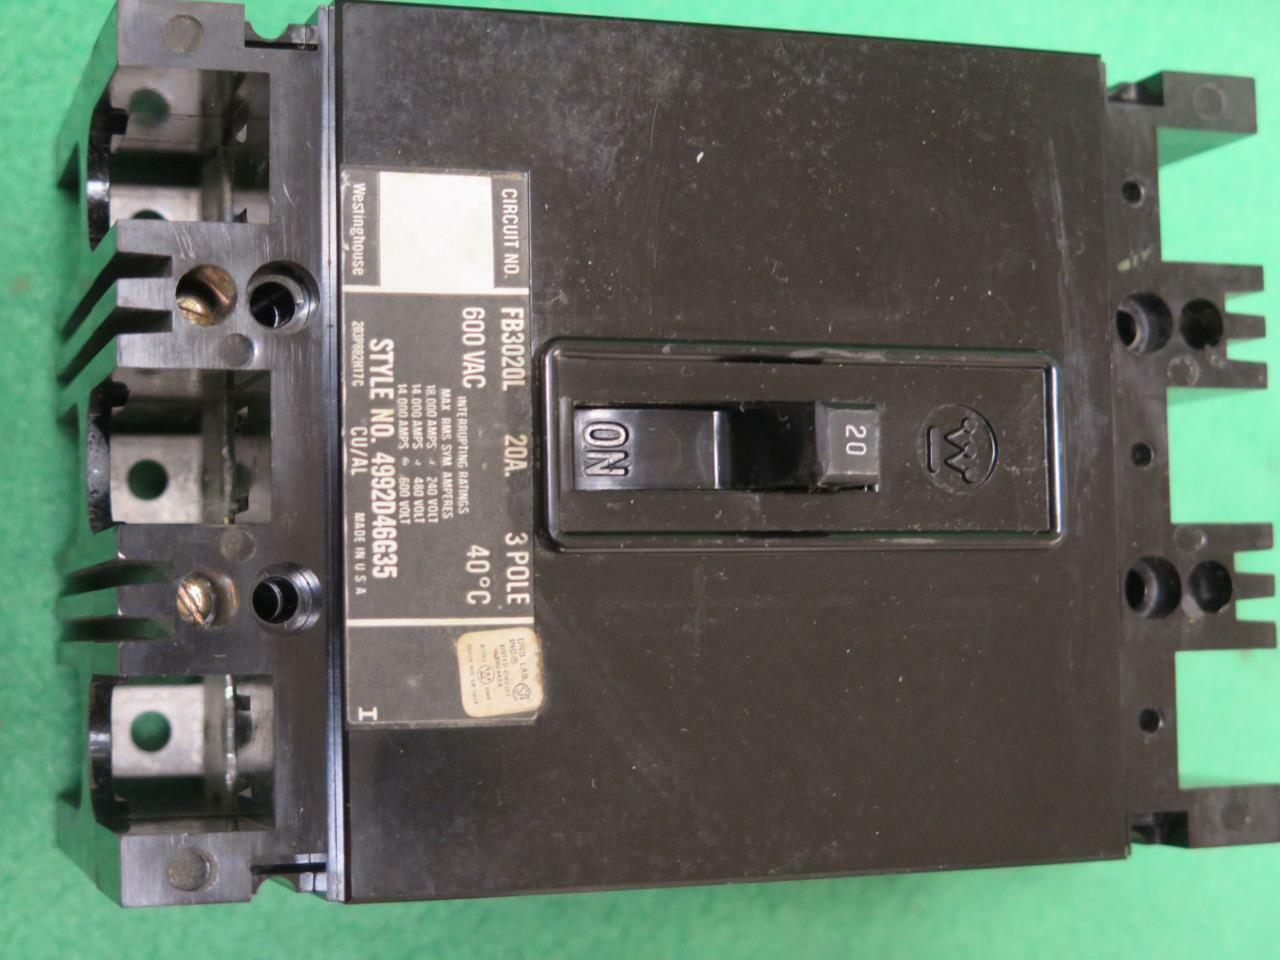 hight resolution of westinghouse fb3020l 20 amp 600vac 3 circuit breaker eaton pole cutler hammer npiffx6013 plc processors